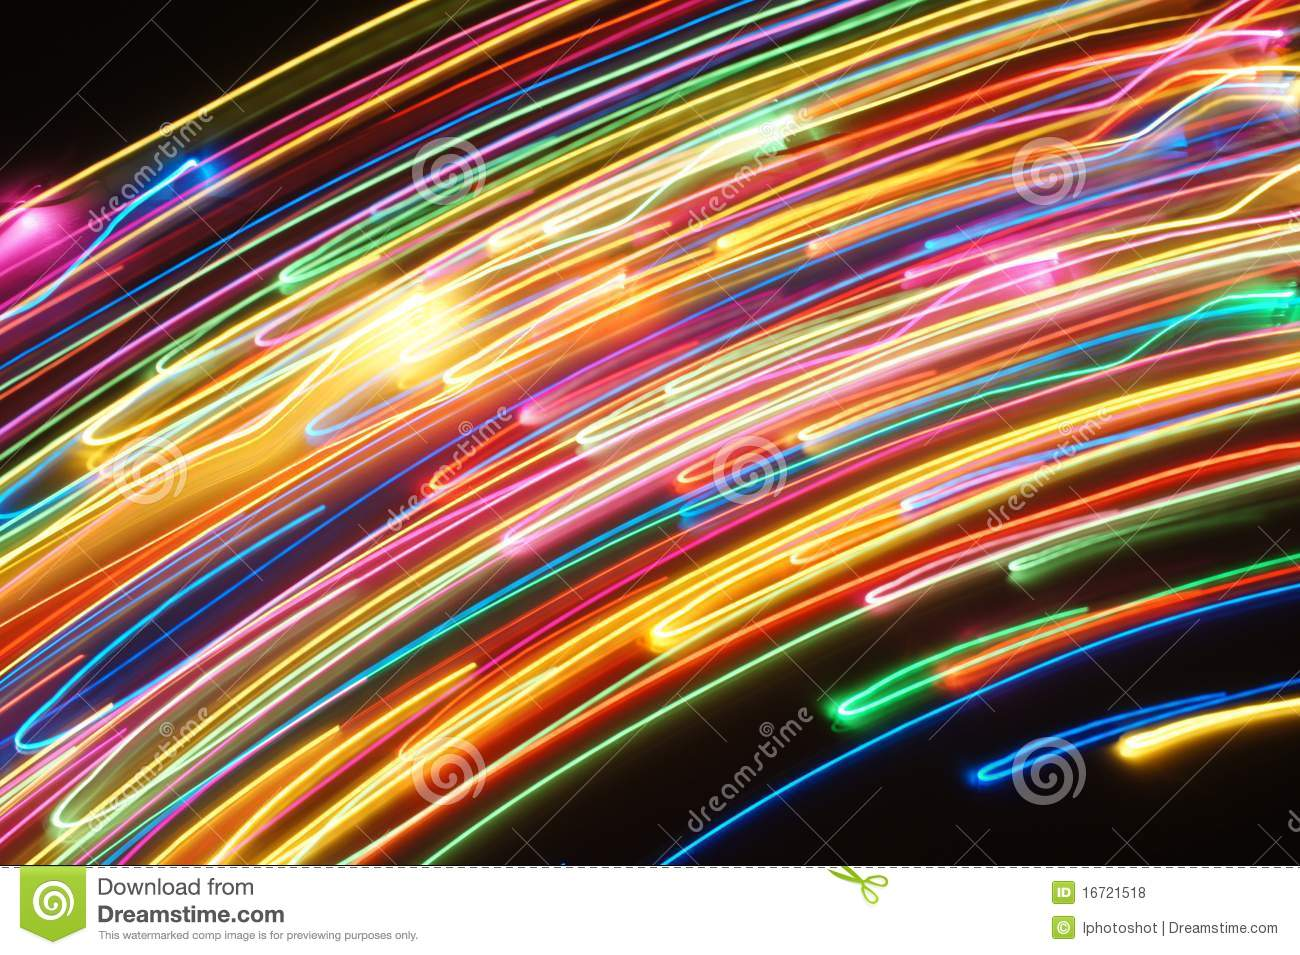 Movement lines 002 royalty free stock photos image 16721518